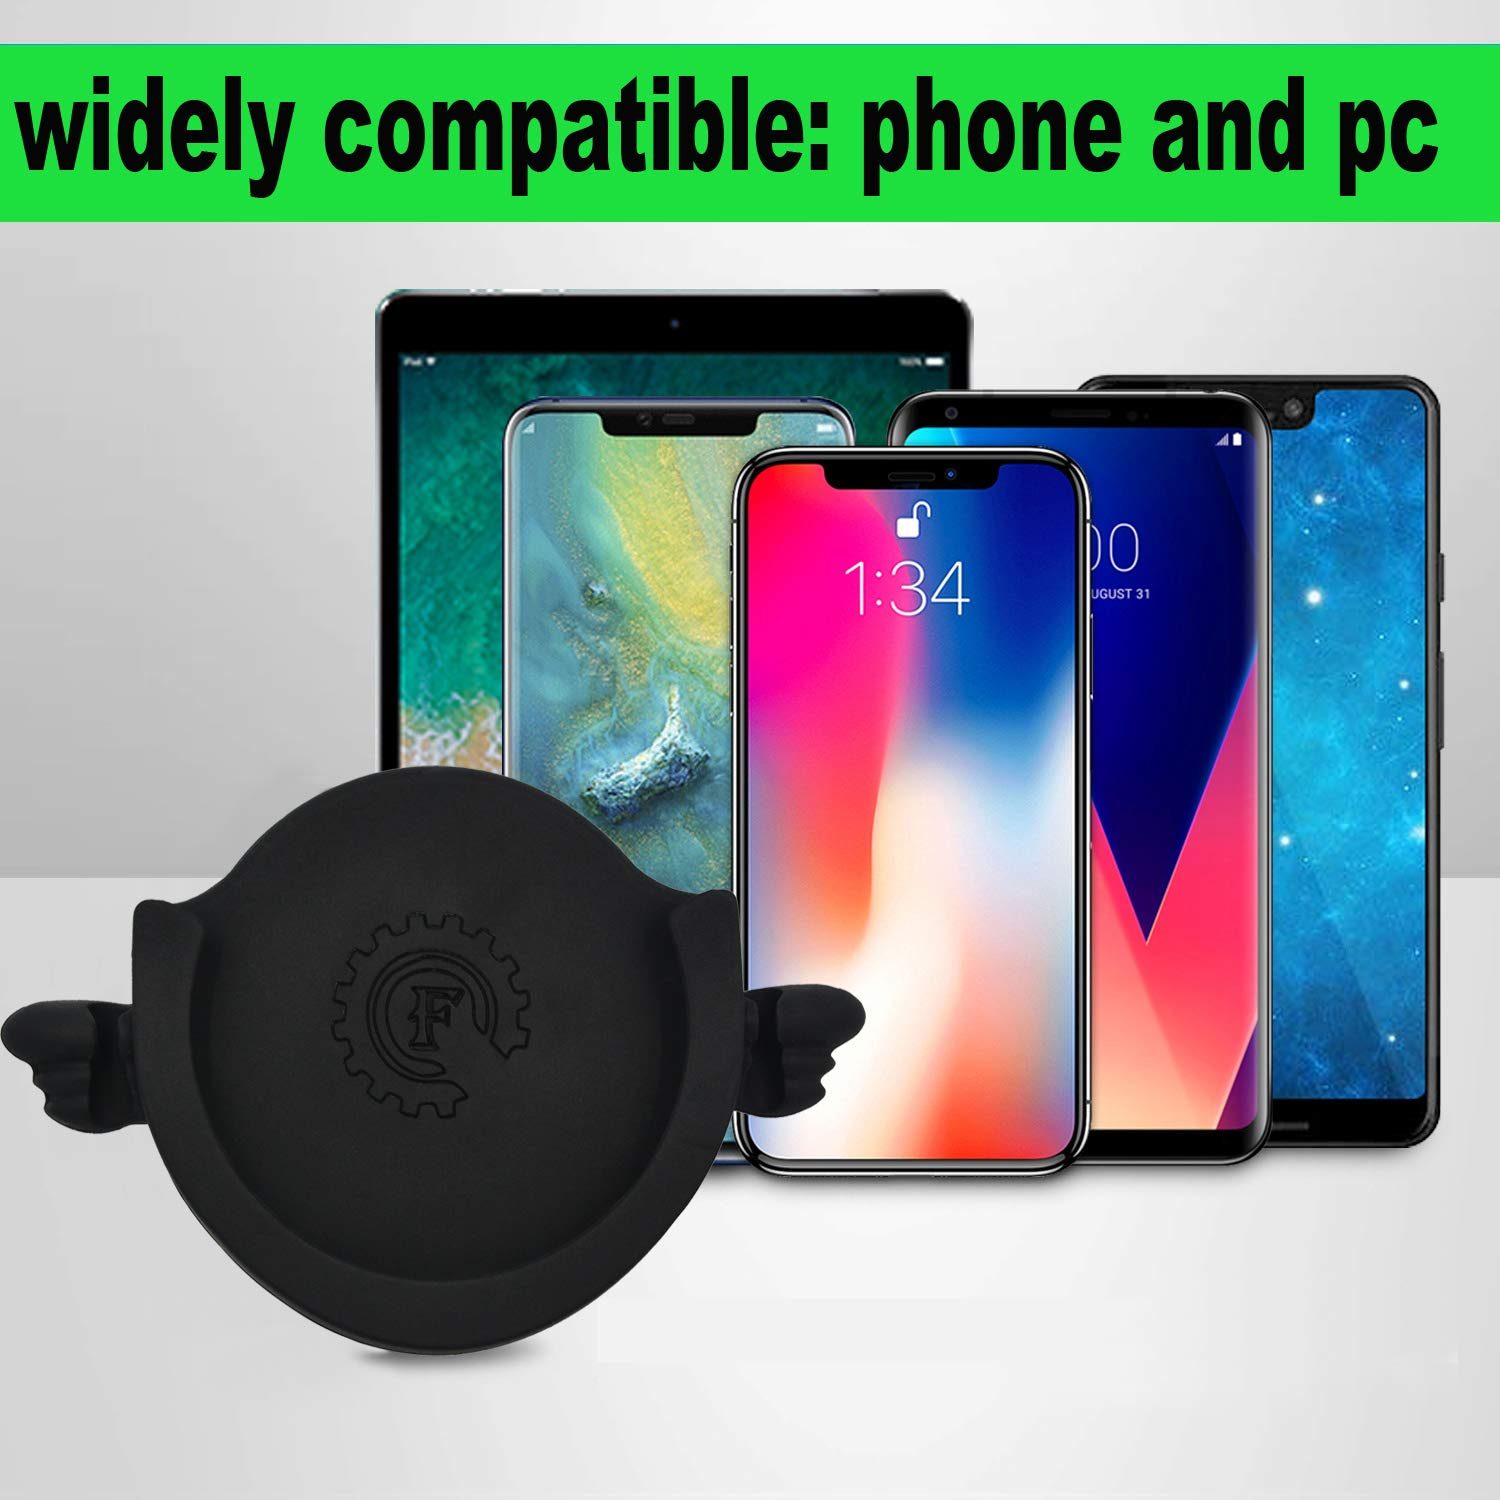 Black POP-F Car Mount for Phone Stand,Phone line Clasp,Car Phone Holder for Collapsible Grip//Socket Mount Users with 3M Sticky Adhesive Replacement Used on Dashboard Wall -2 Black Home Desk